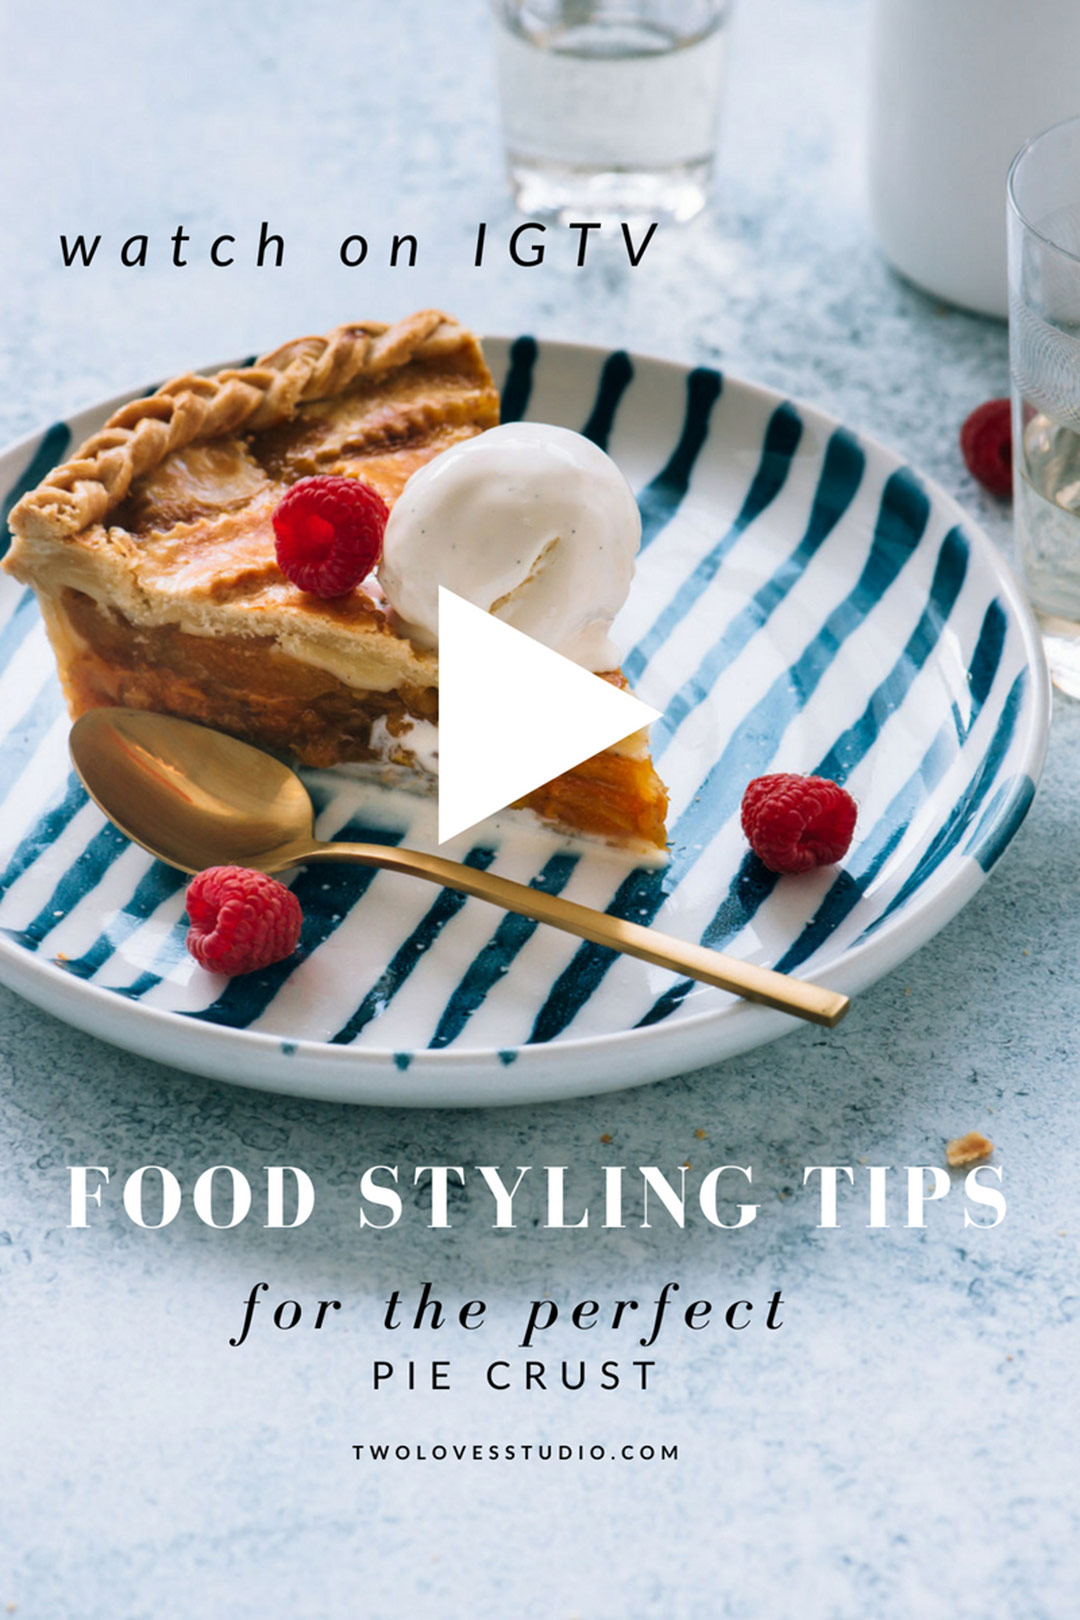 Top 7 food styling tips to create the perfect pie crust for food photography. Click to read them all.